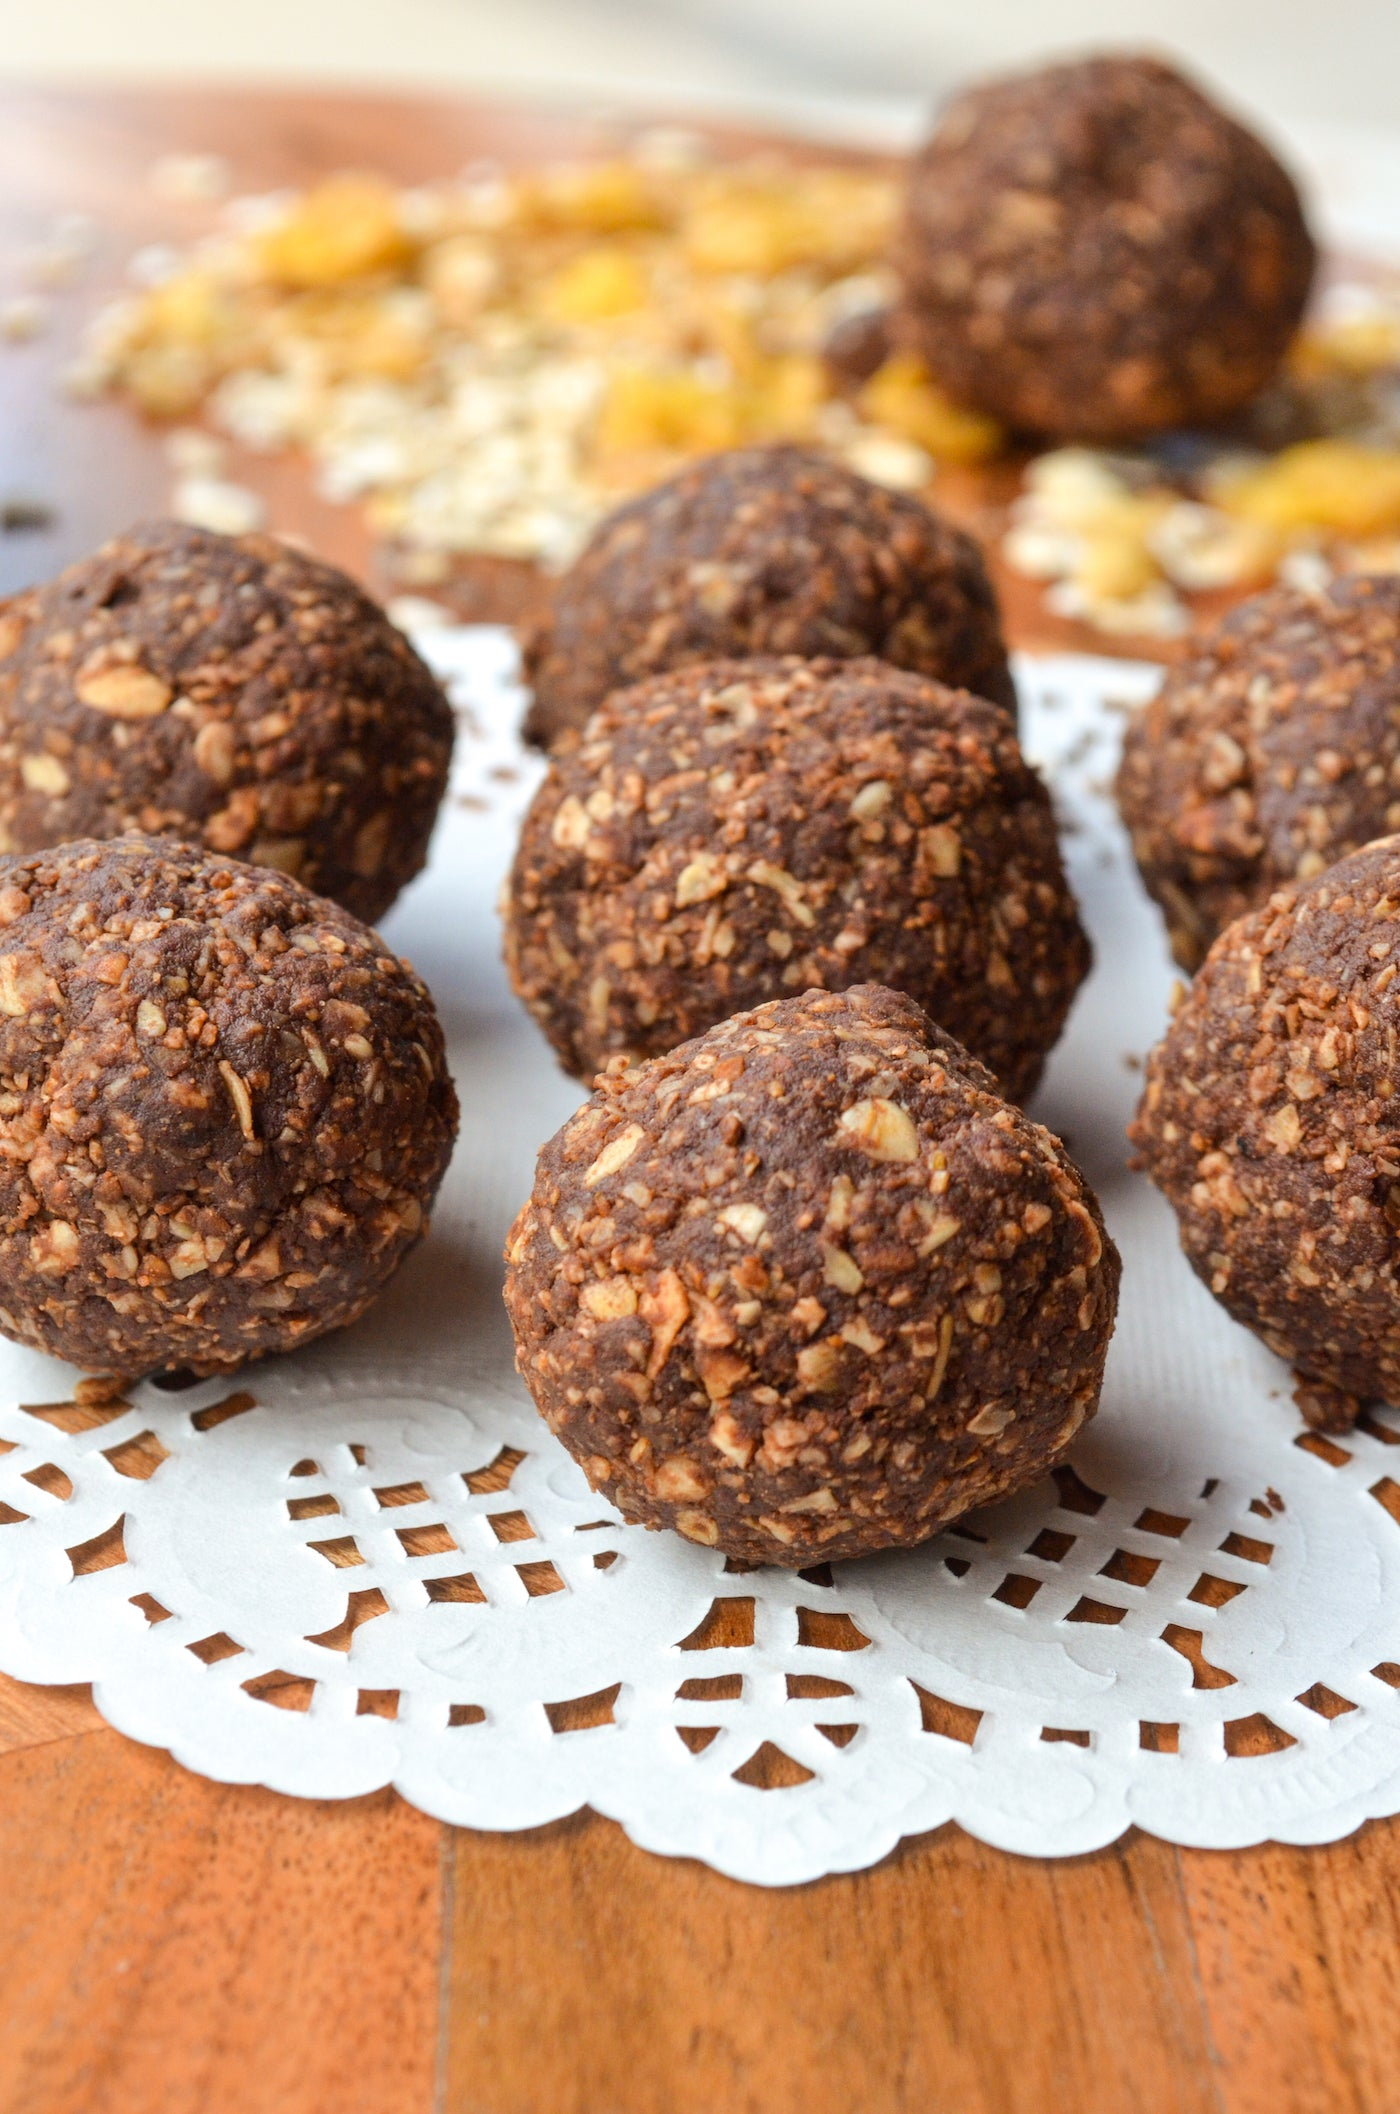 No bake dark chocolate oats bites